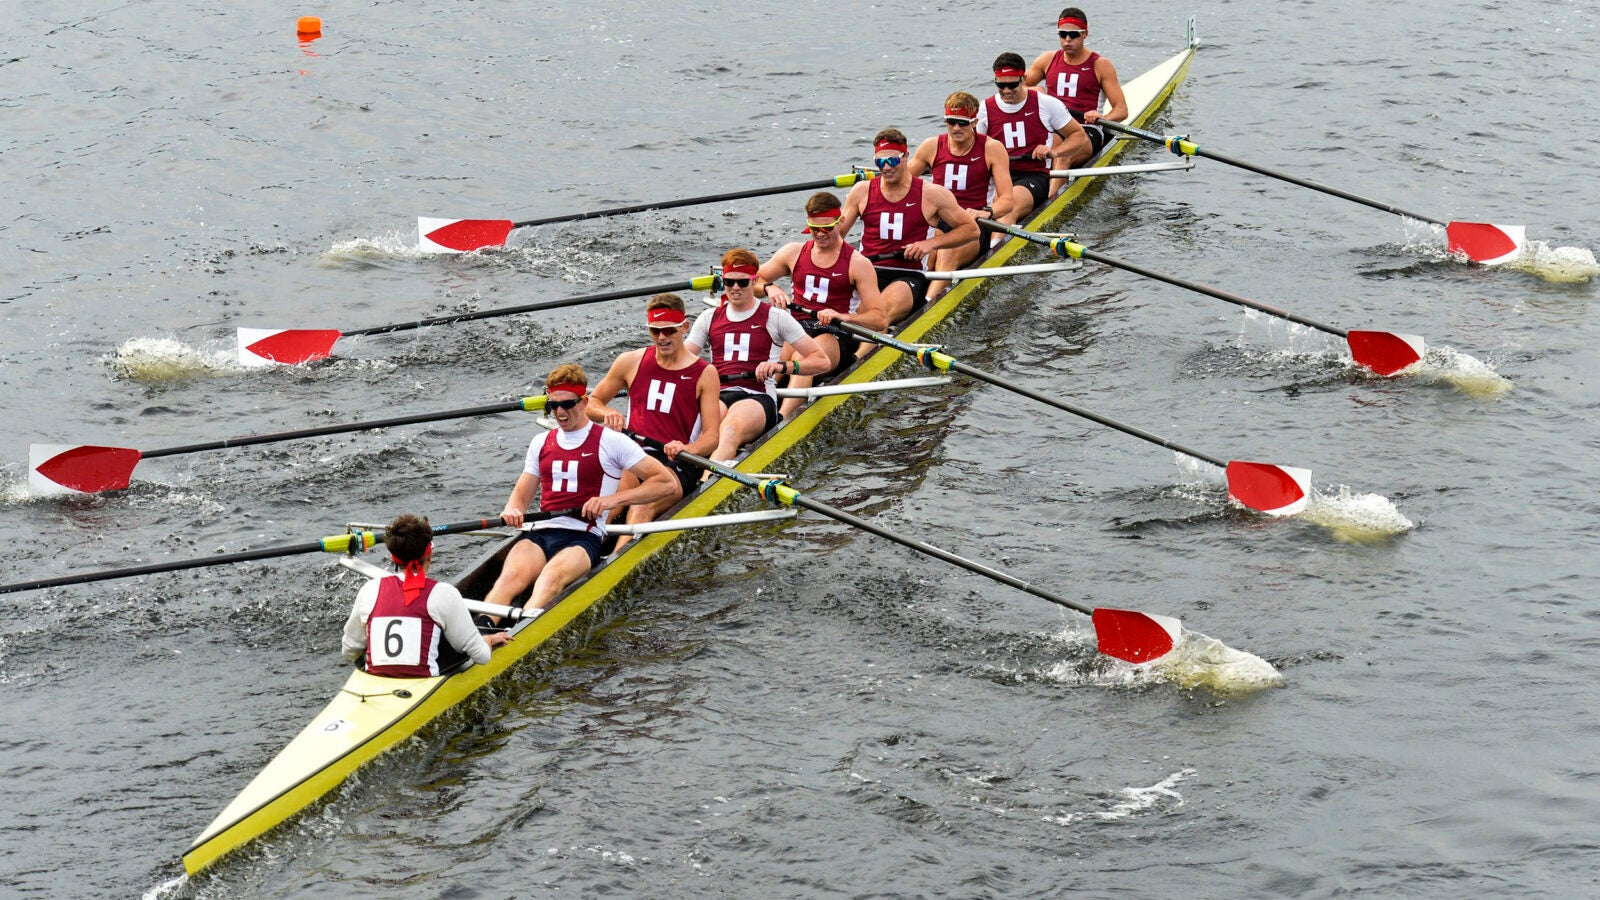 Harvard's heavyweight boat passes beneath the Weeks Footbridge in the men's championship eights race during the Head of the Charles.